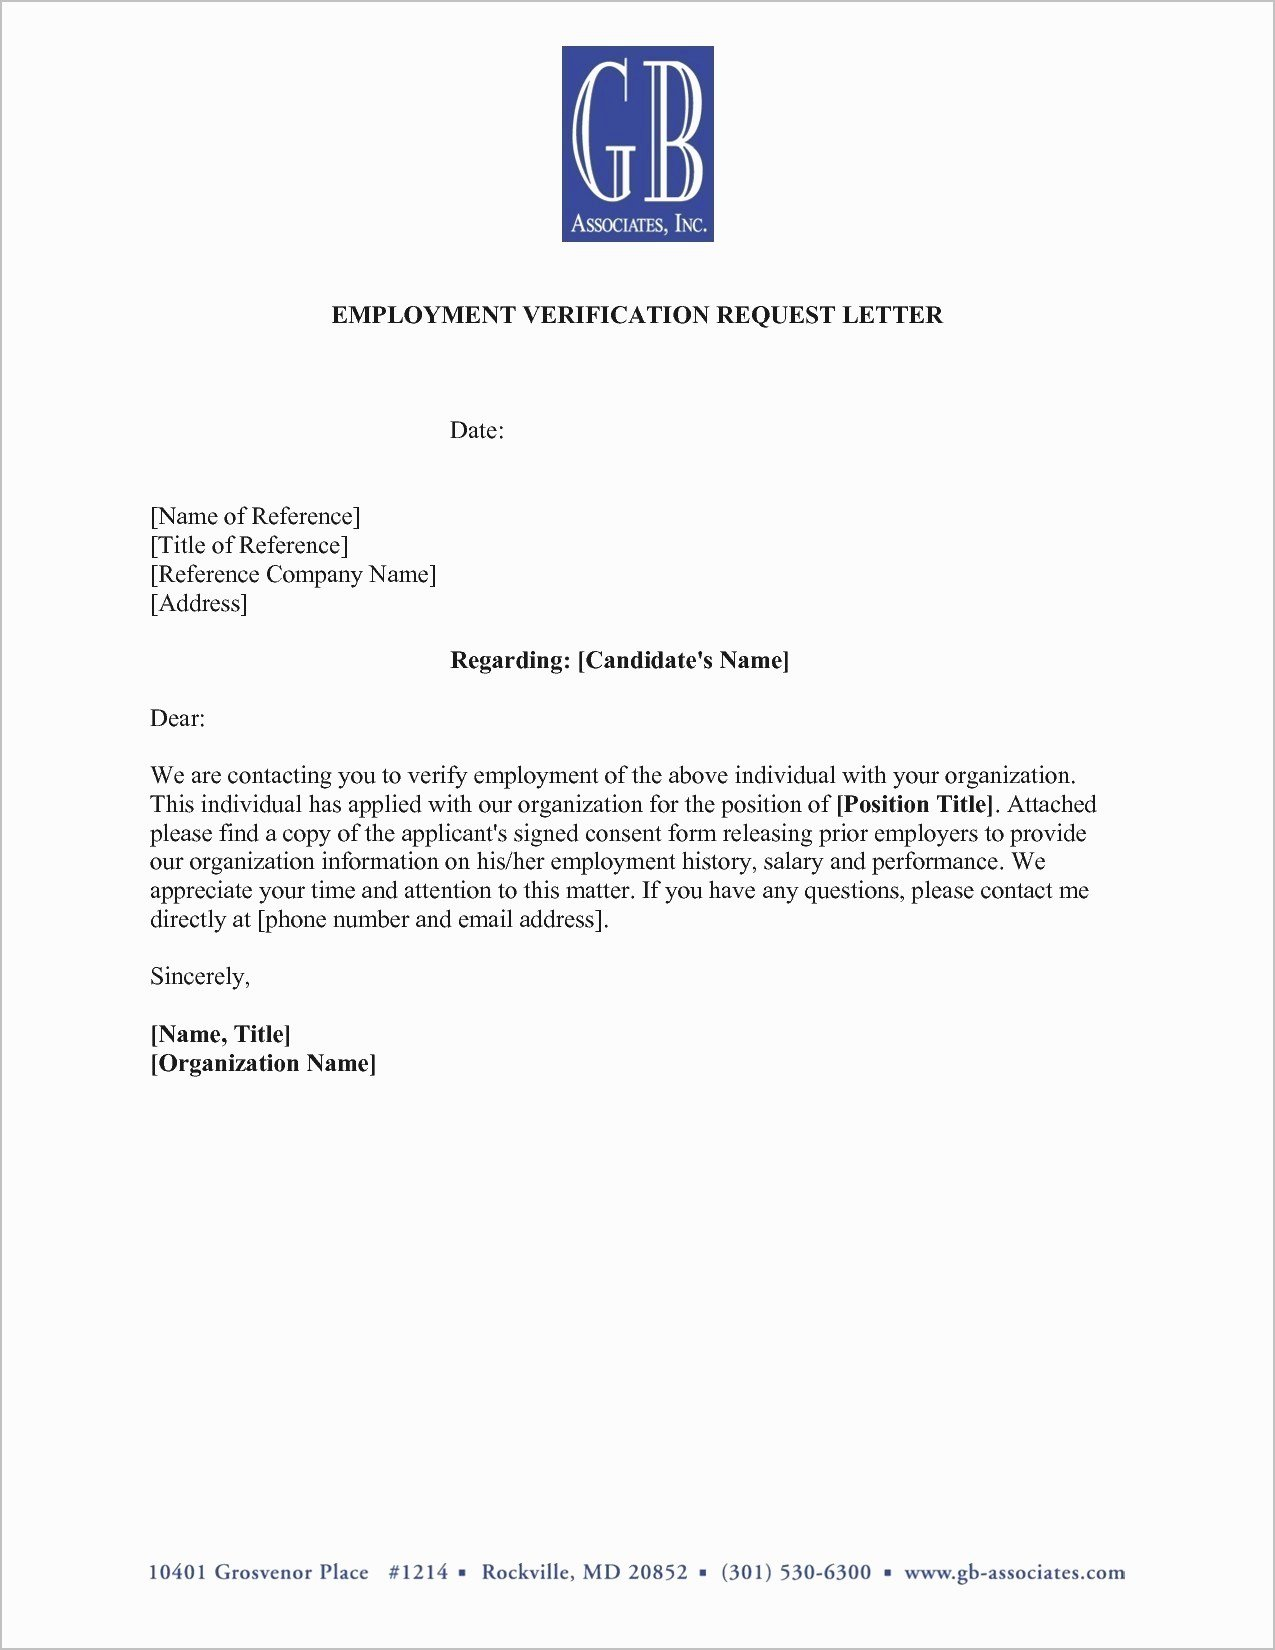 Green Card Recommendation Letter Sample Best Of New Employment Verification Letter Sample for Green Card